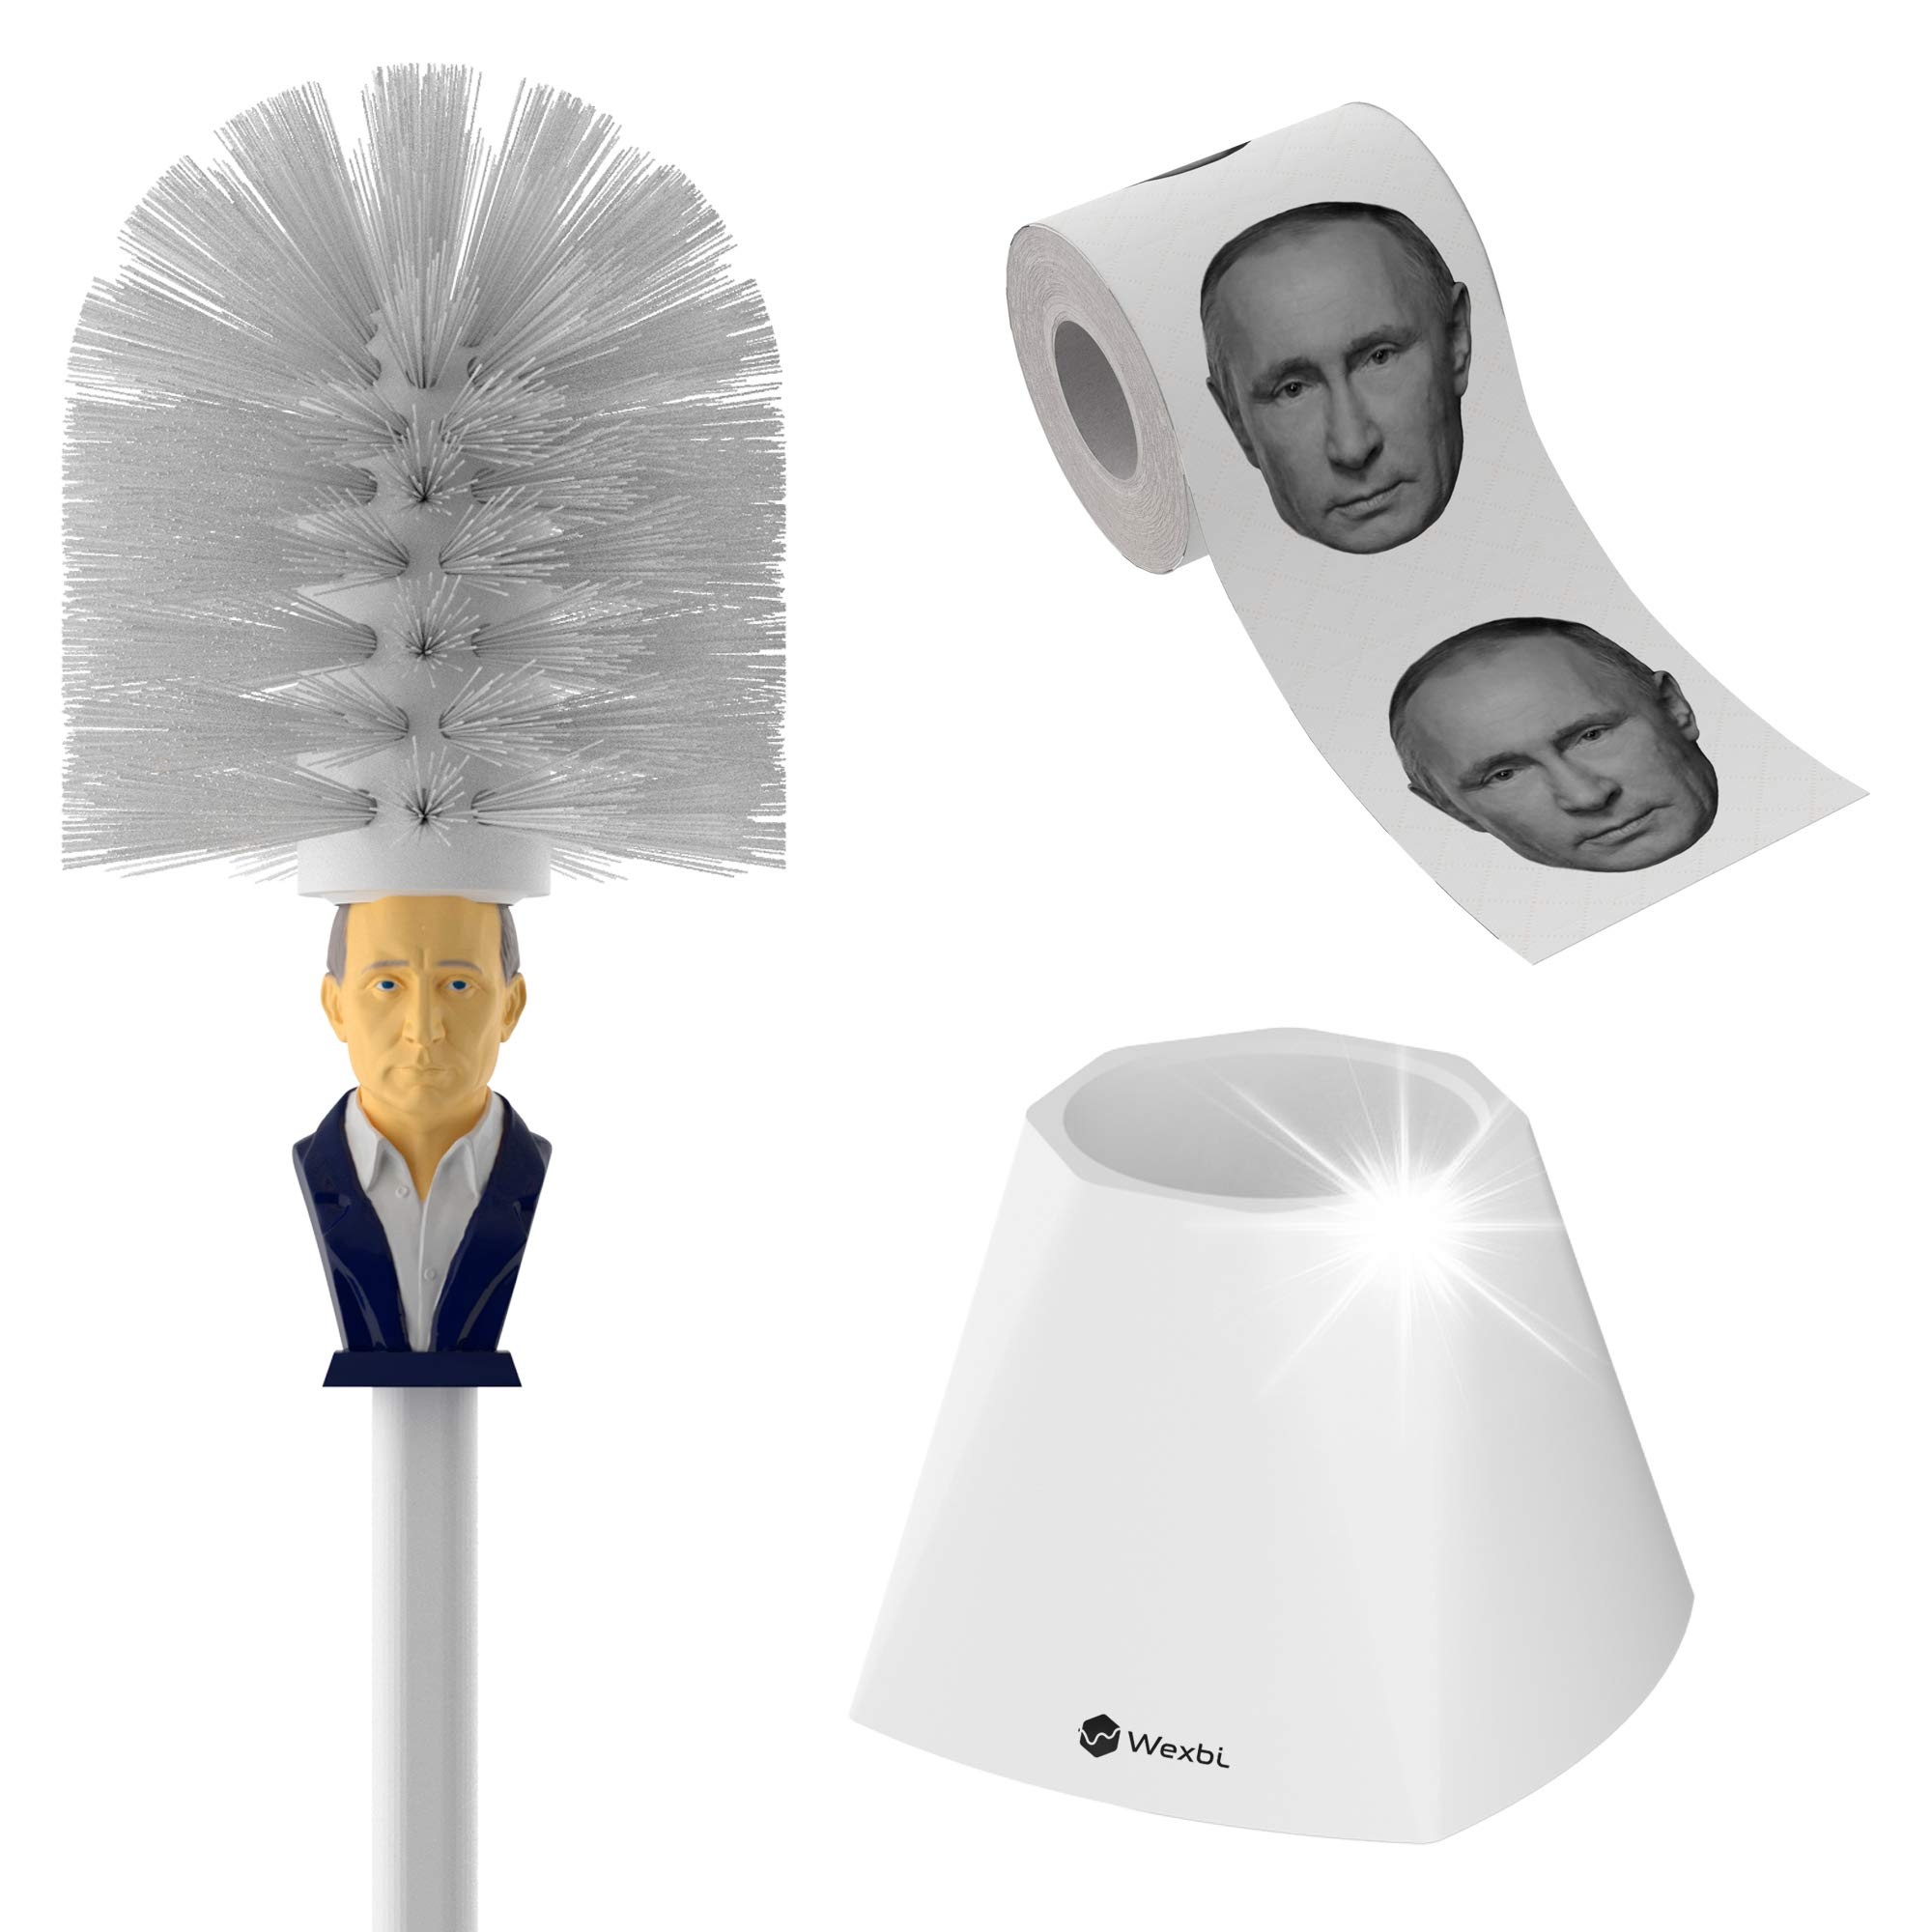 Toilet Brush and Putin Toilet Paper - Hilarious Toilet Bowl Cleaner with Holder and Roll of Wipes with Russian President Vladimir Putin's Face - Funny Political Gag Novelty Bathroom Decor